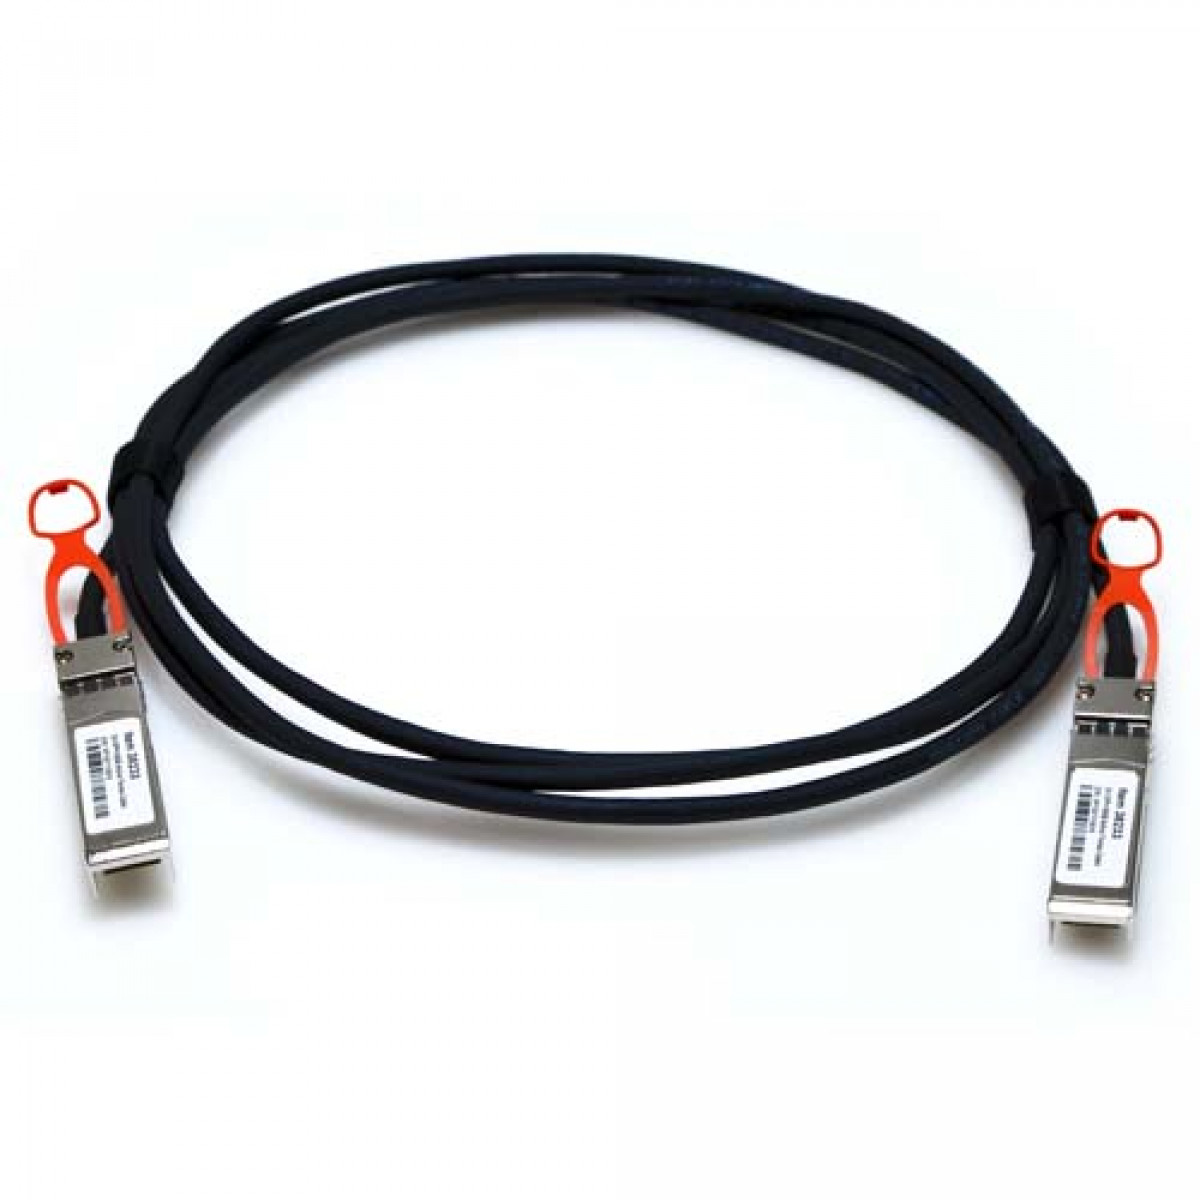 3m Sfp 10gb Copper Active Twinax 30awg Direct Attach Cable